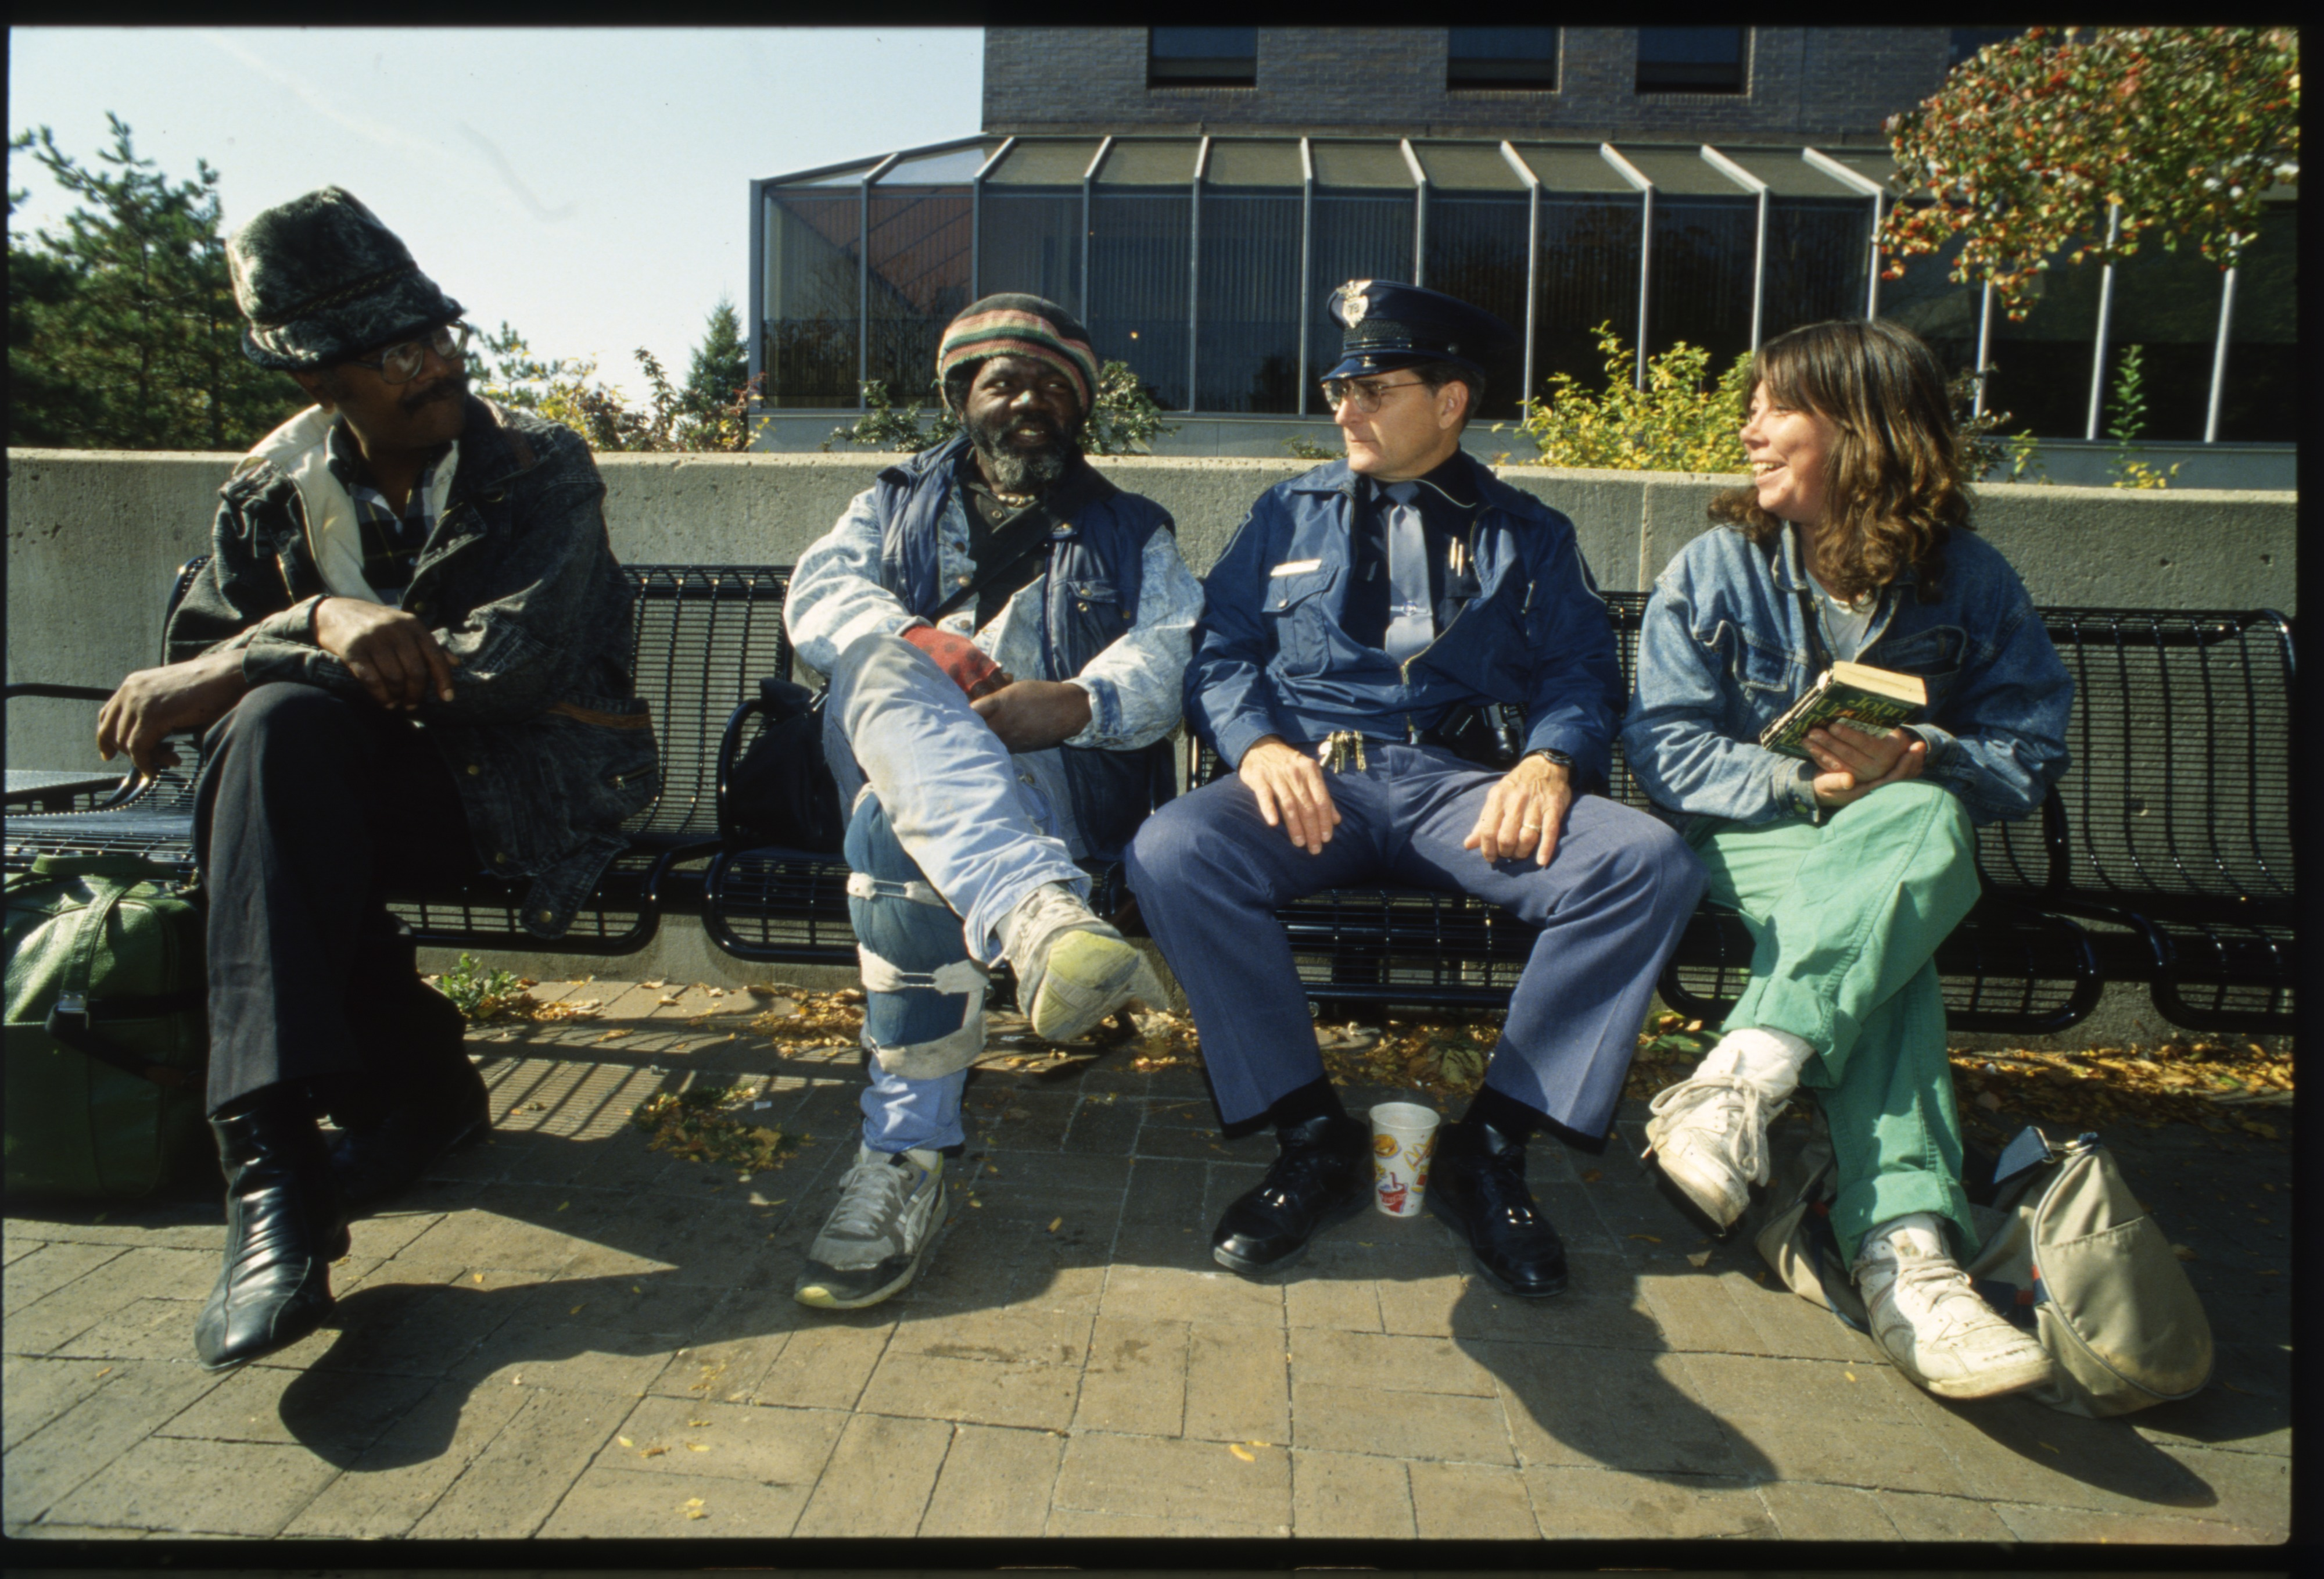 Downtown Ann Arbor Beat Cop Phil LaVigne Chats With Liberty Square Regulars, October 1991 image